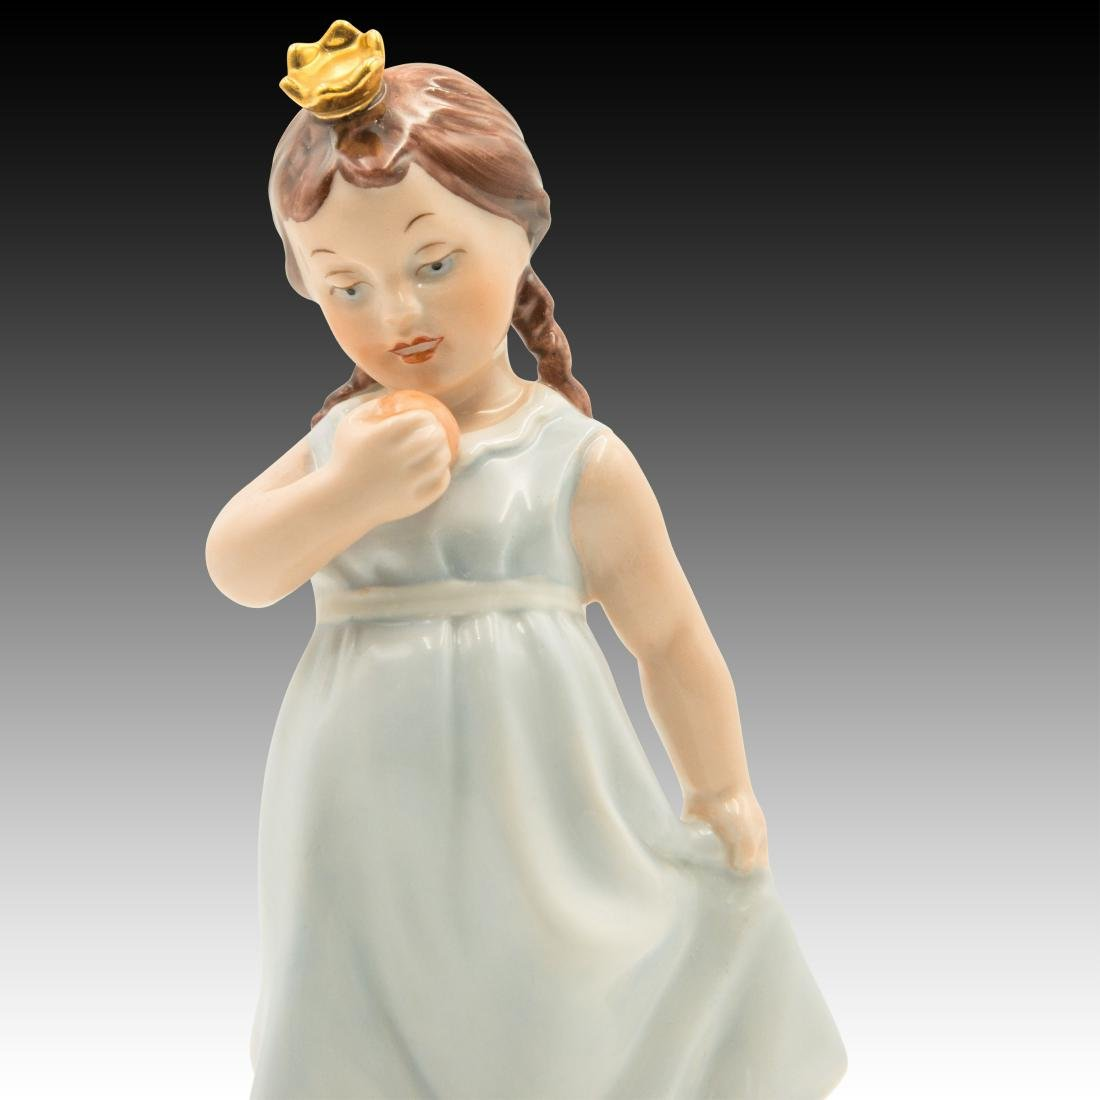 Royal Dux Princess and the Frog Figurine - 5